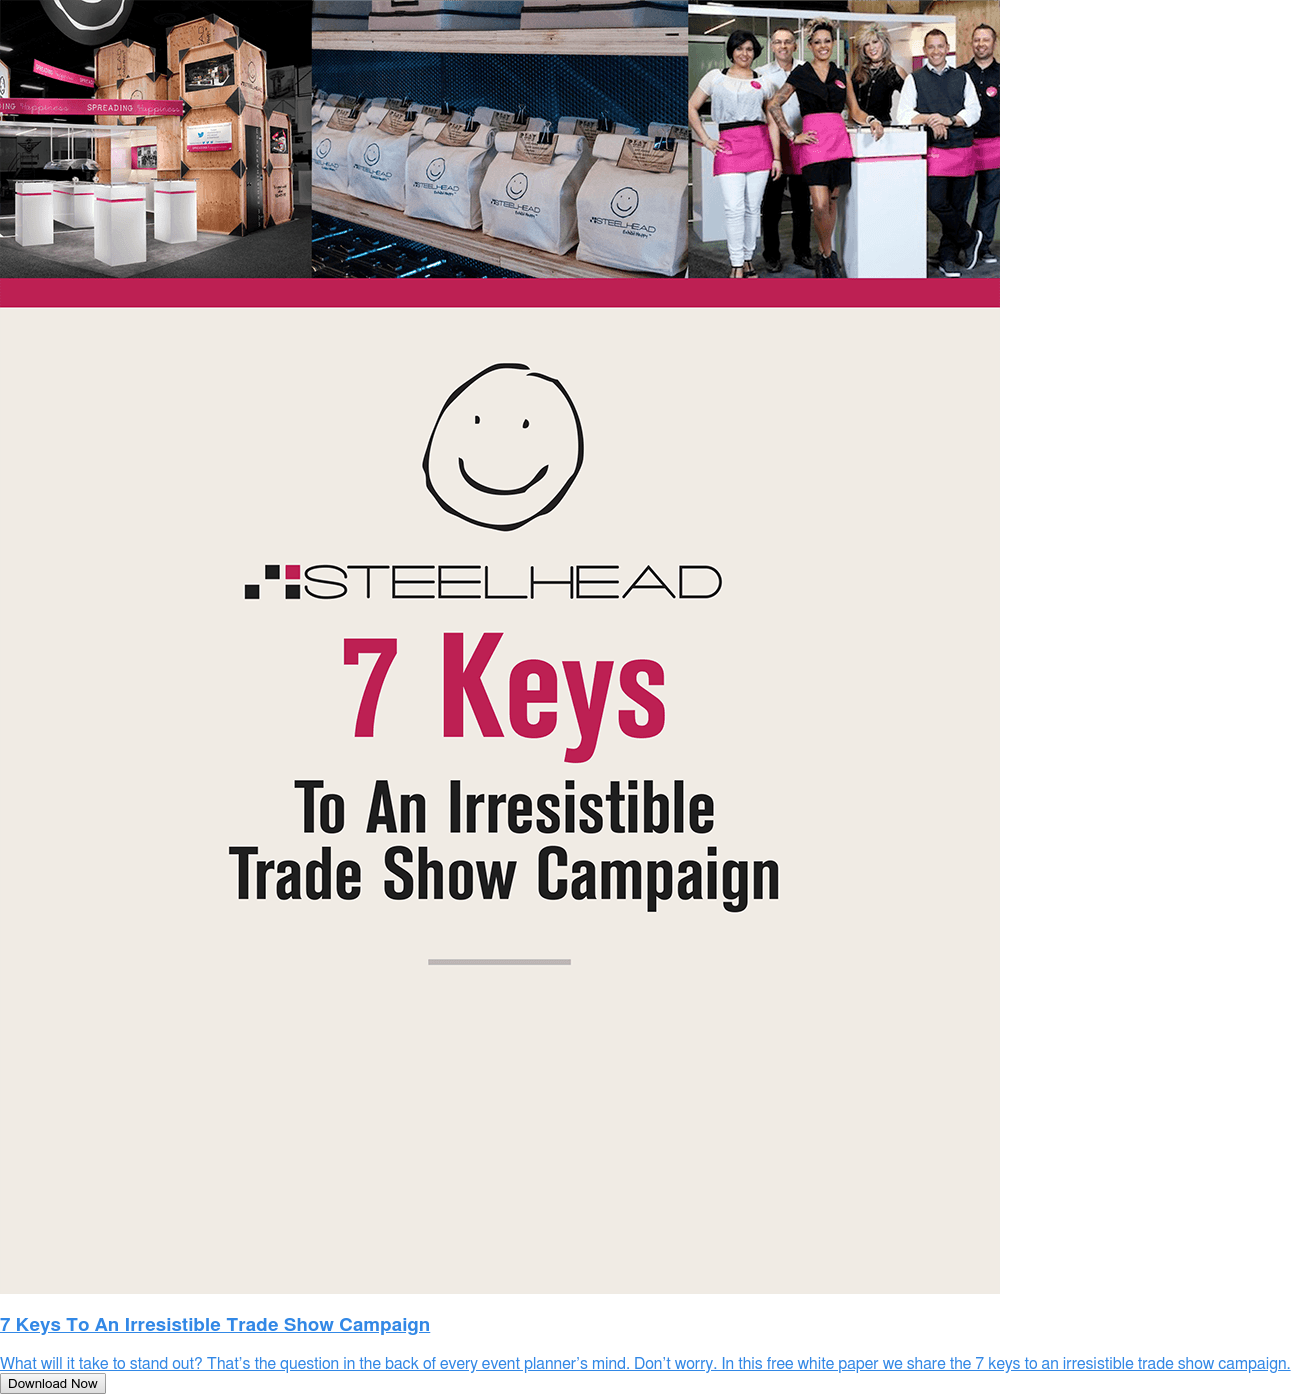 7 Keys To An Irresistible Trade Show Campaign  What will it take to stand out? That's the question in the back of every event  planner's mind. Don't worry. In this free white paper we share the 7 keys to an  irresistible trade show campaign. Download Now